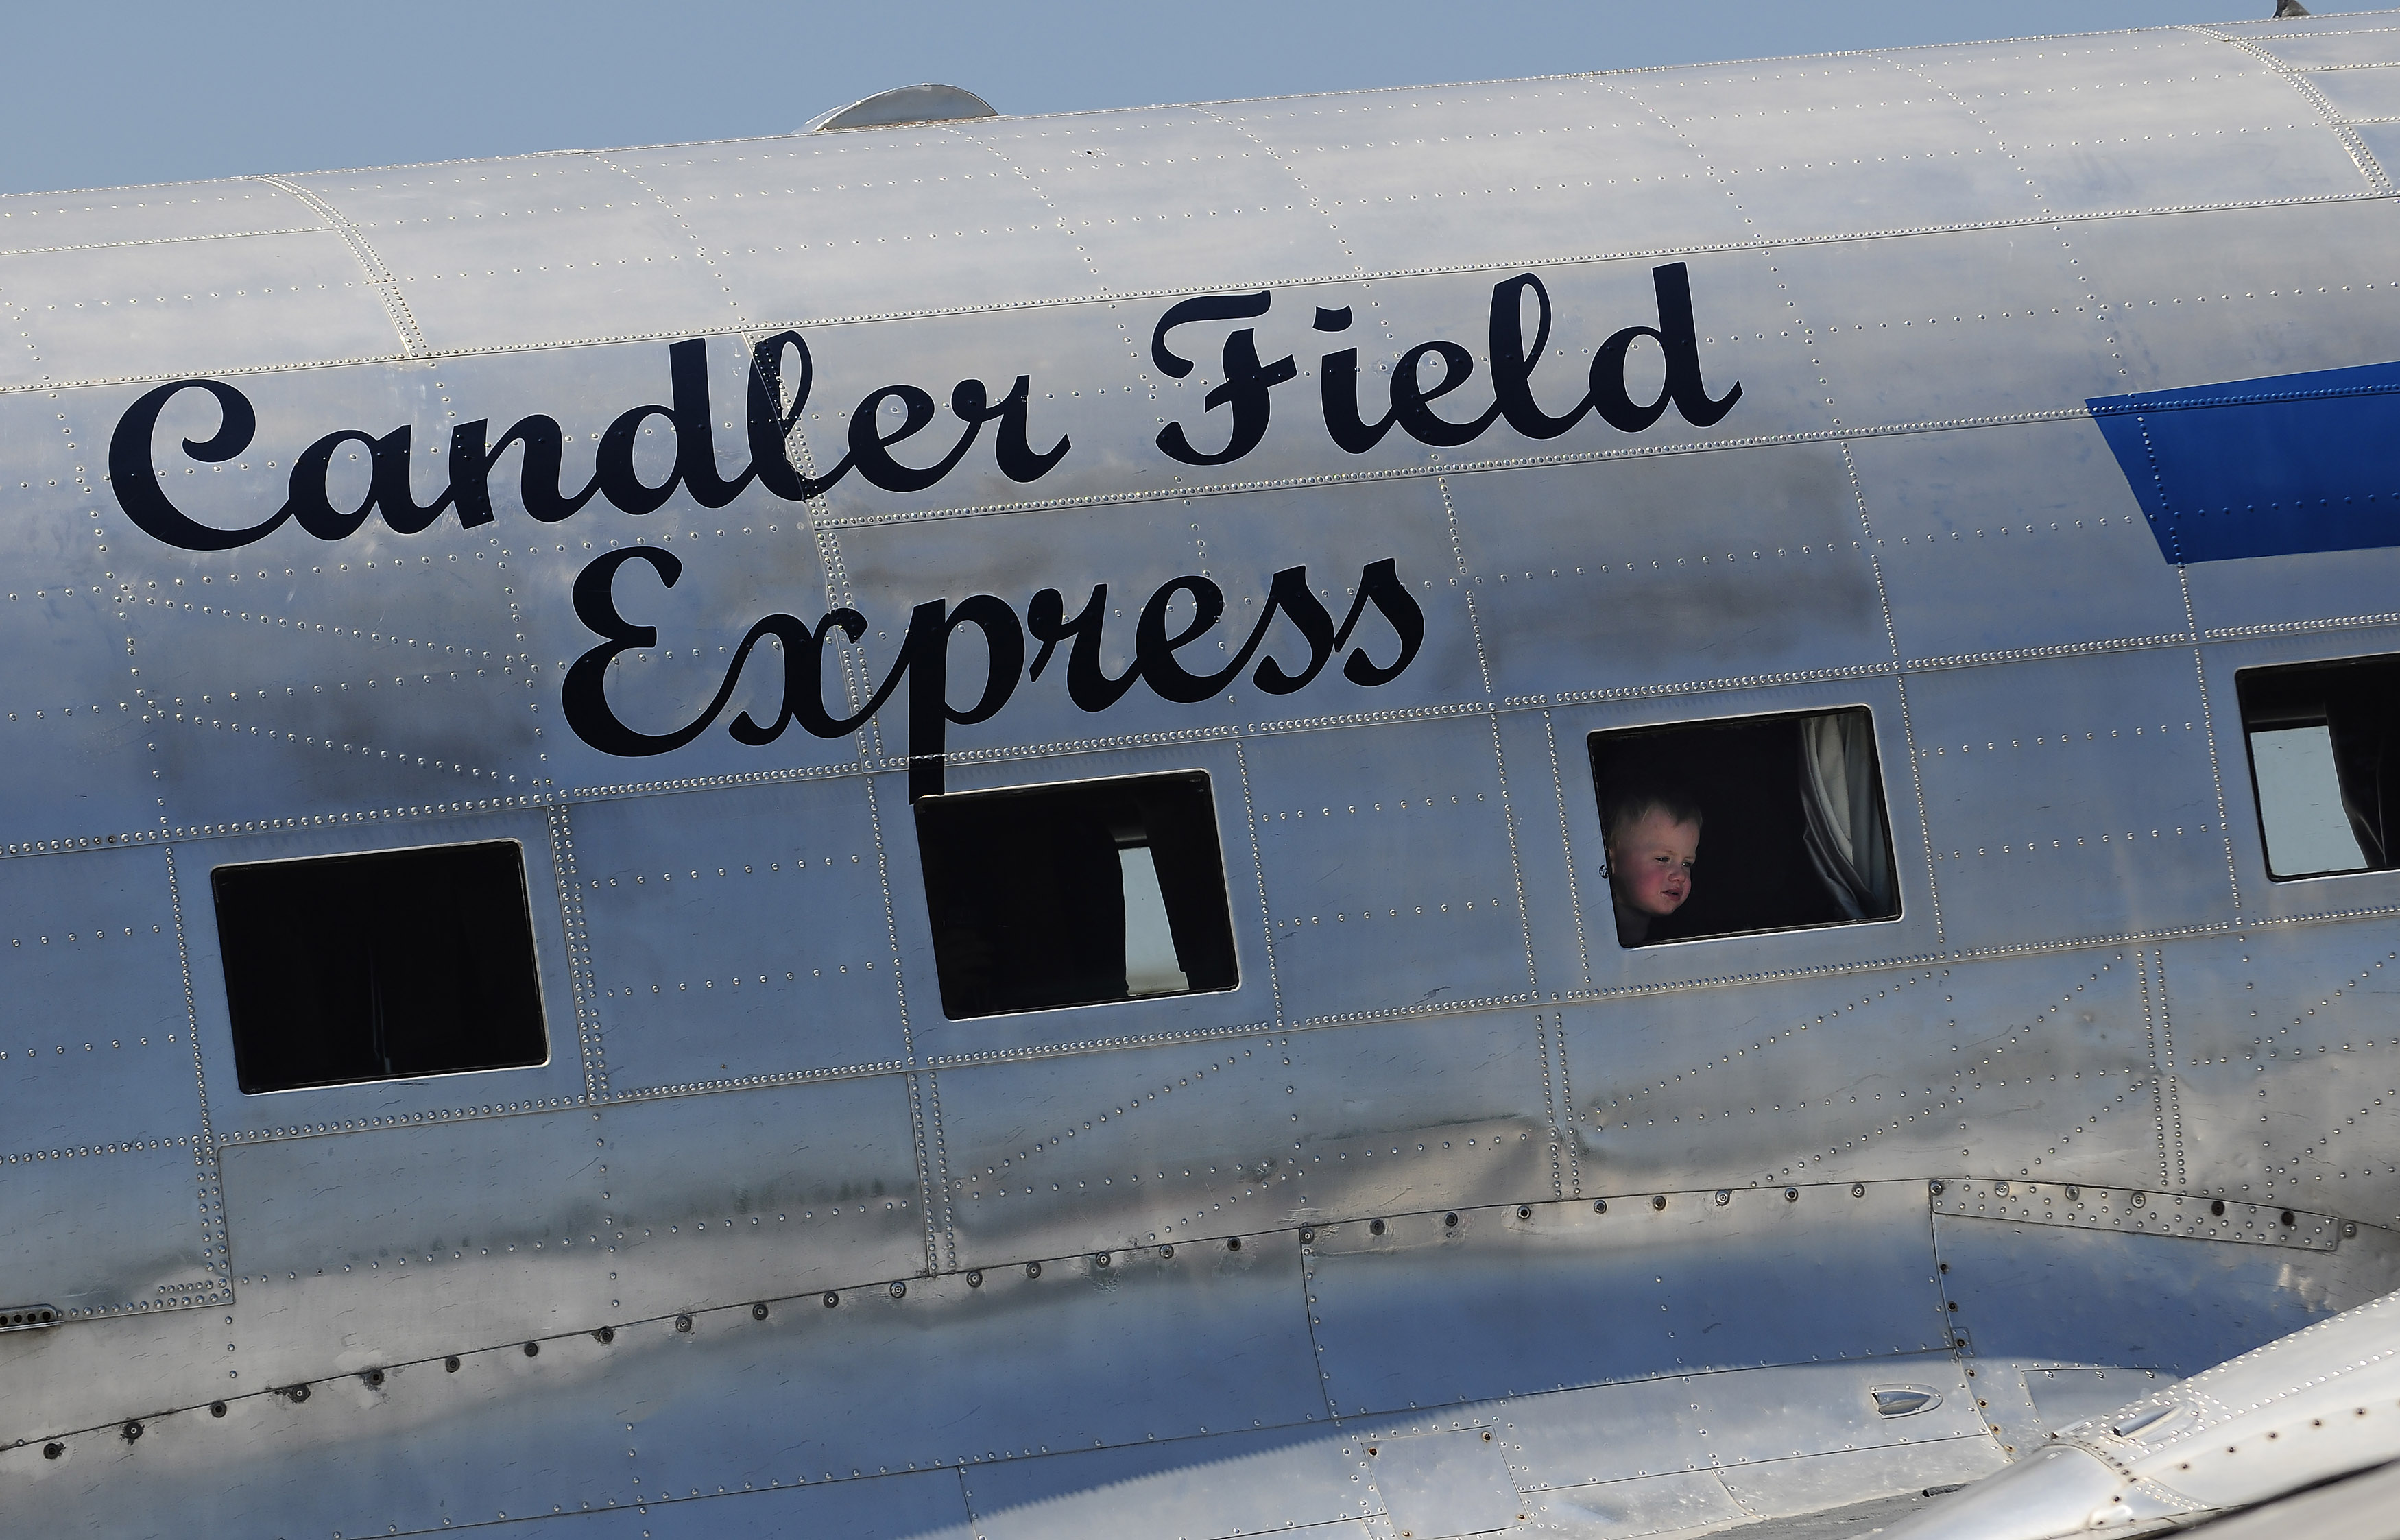 The 'Candler Field Express' DC-3 owned by Ron Alexander provides an interesting view for a young aviator during Peach State Aerodrome's 2011 Vintage Day celebration in Williamson, Georgia. Photo by David Tulis.